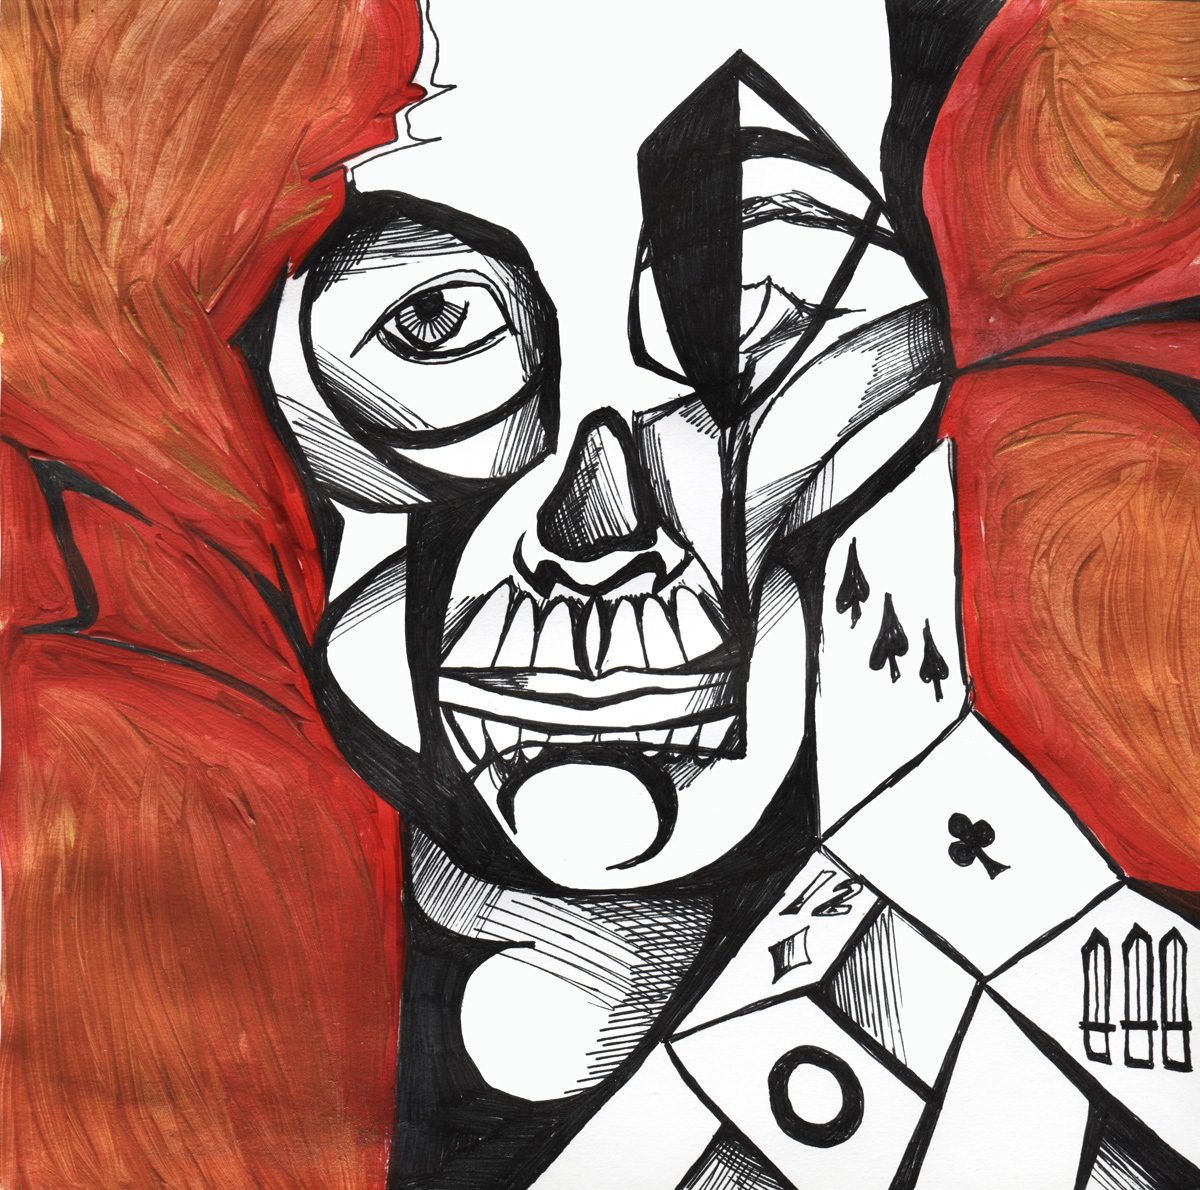 The image shows a piece of artwork by Jina Wallwork. It is an ink and paint drawing of Jina Wallwork. It's a self portrait. Stylistically this piece of artwork has links with surrealism.